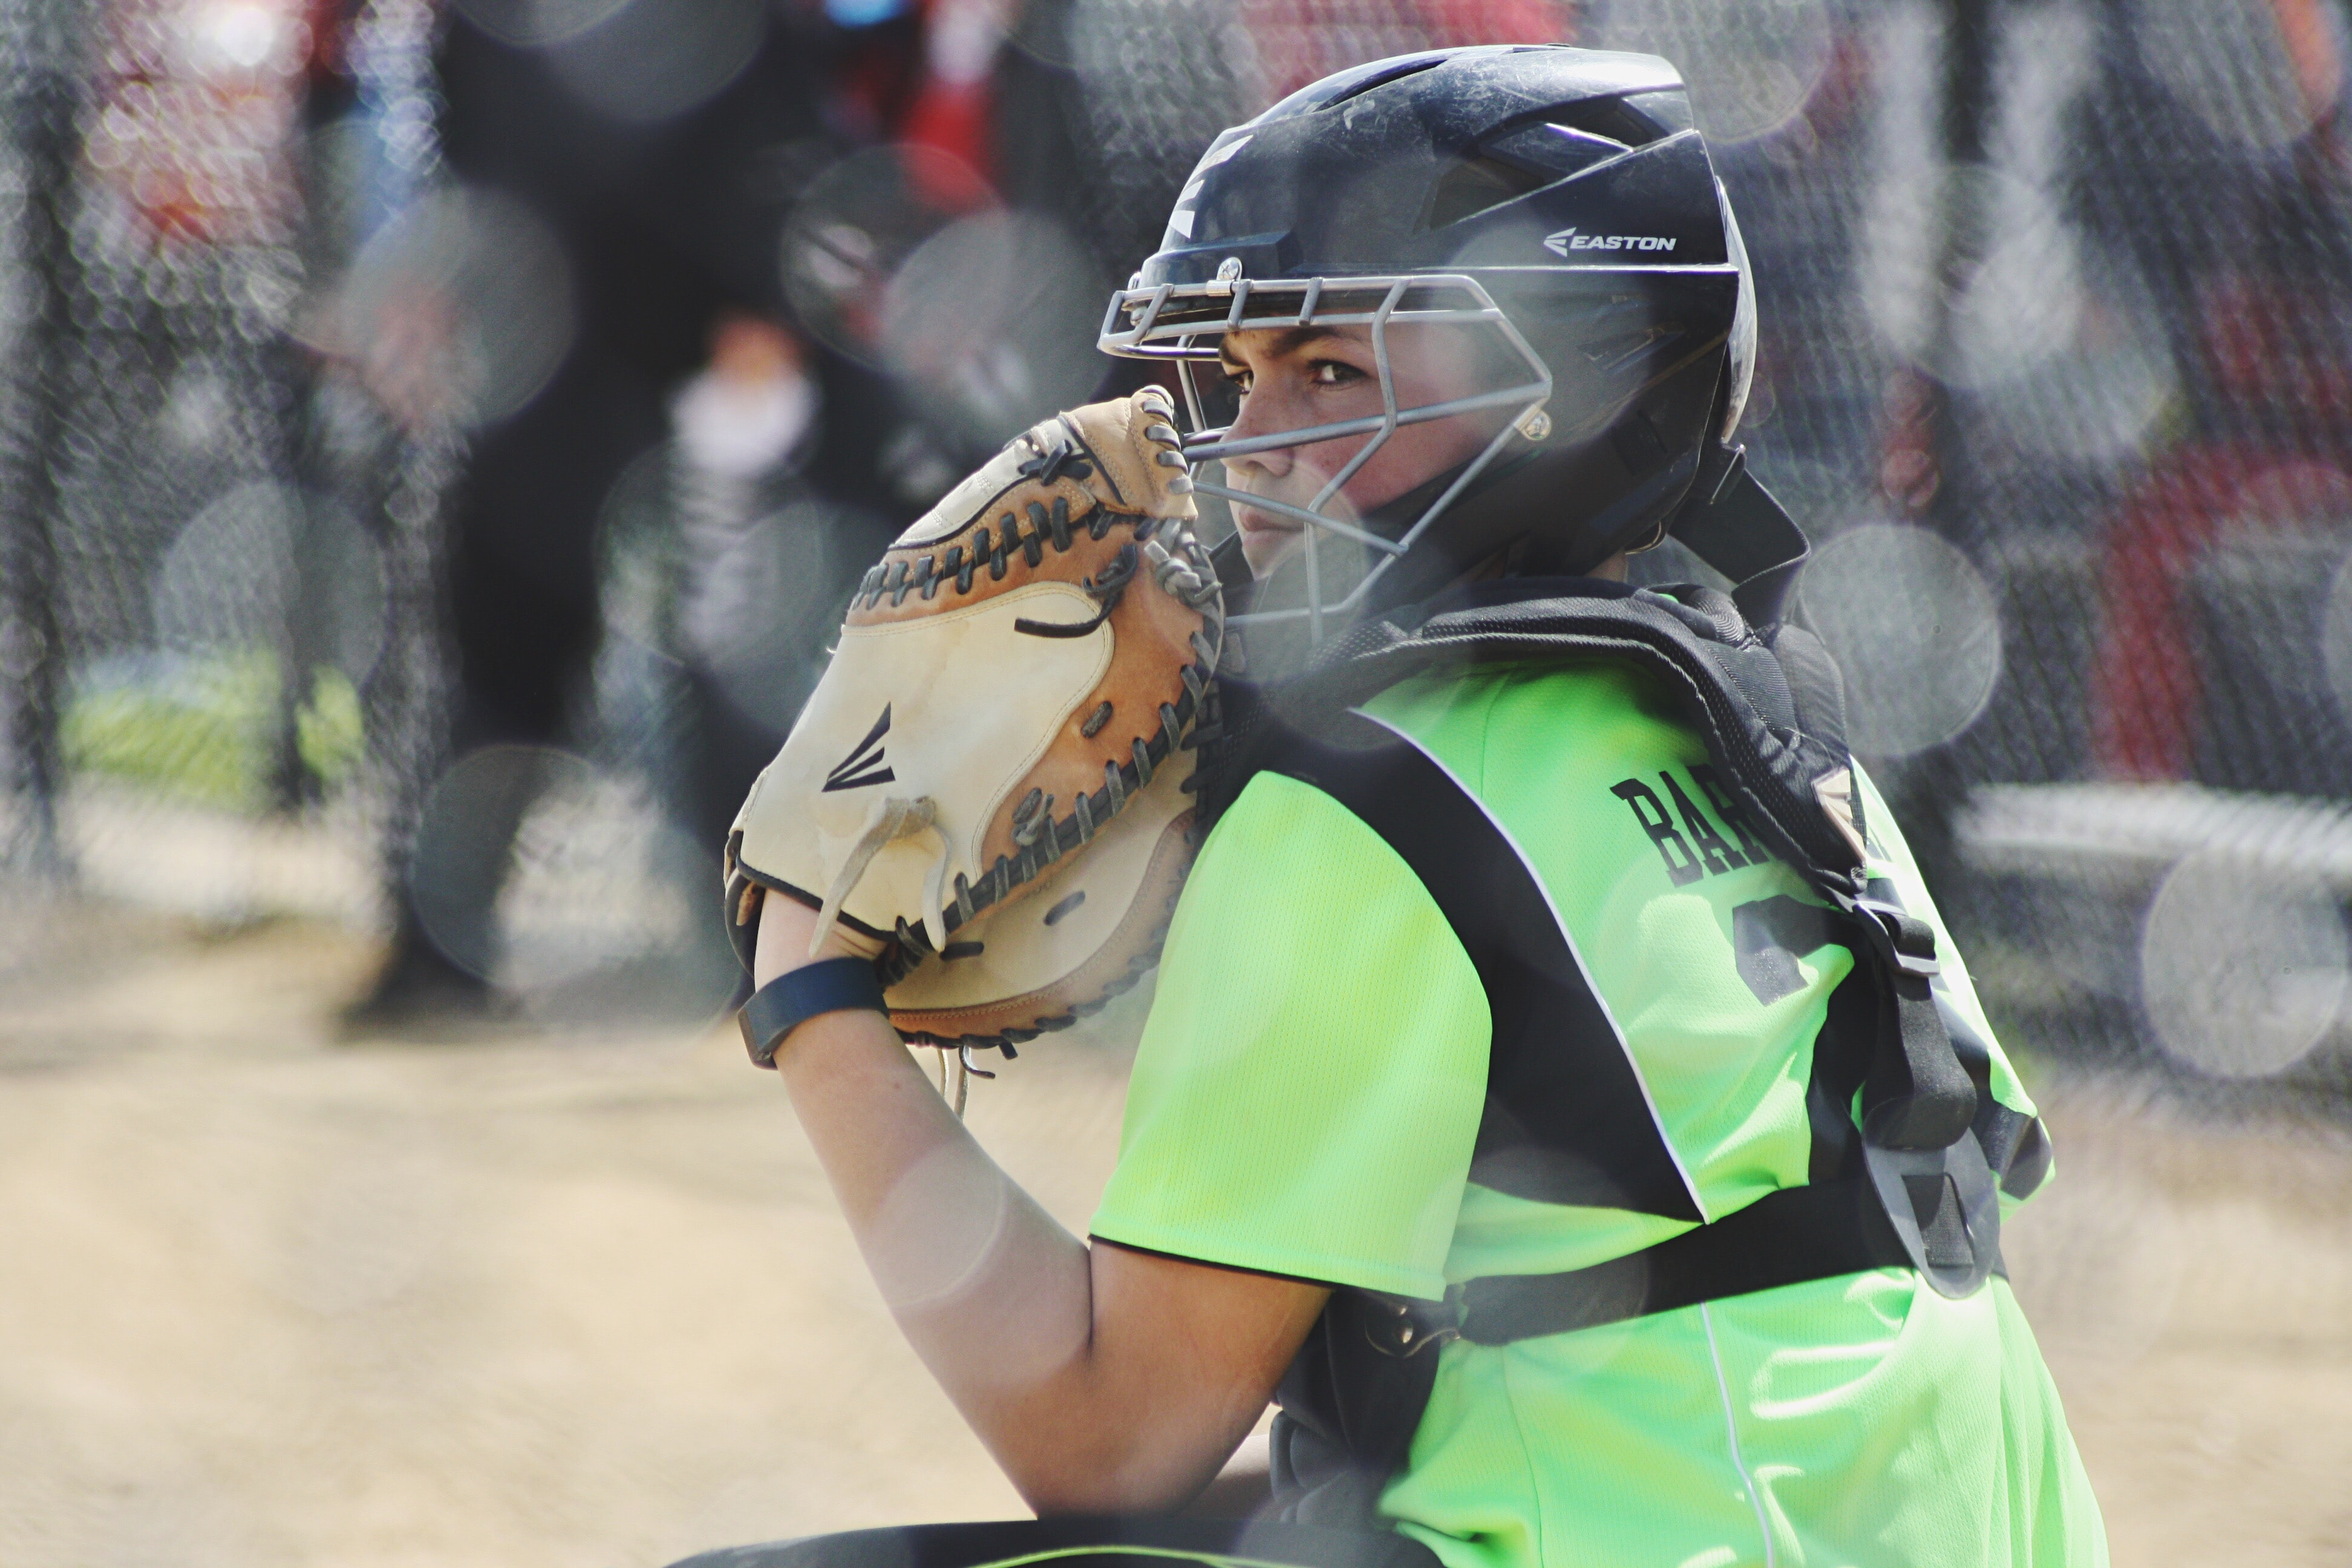 A female catcher staring in a baseball stadium while wearing a glove and mask